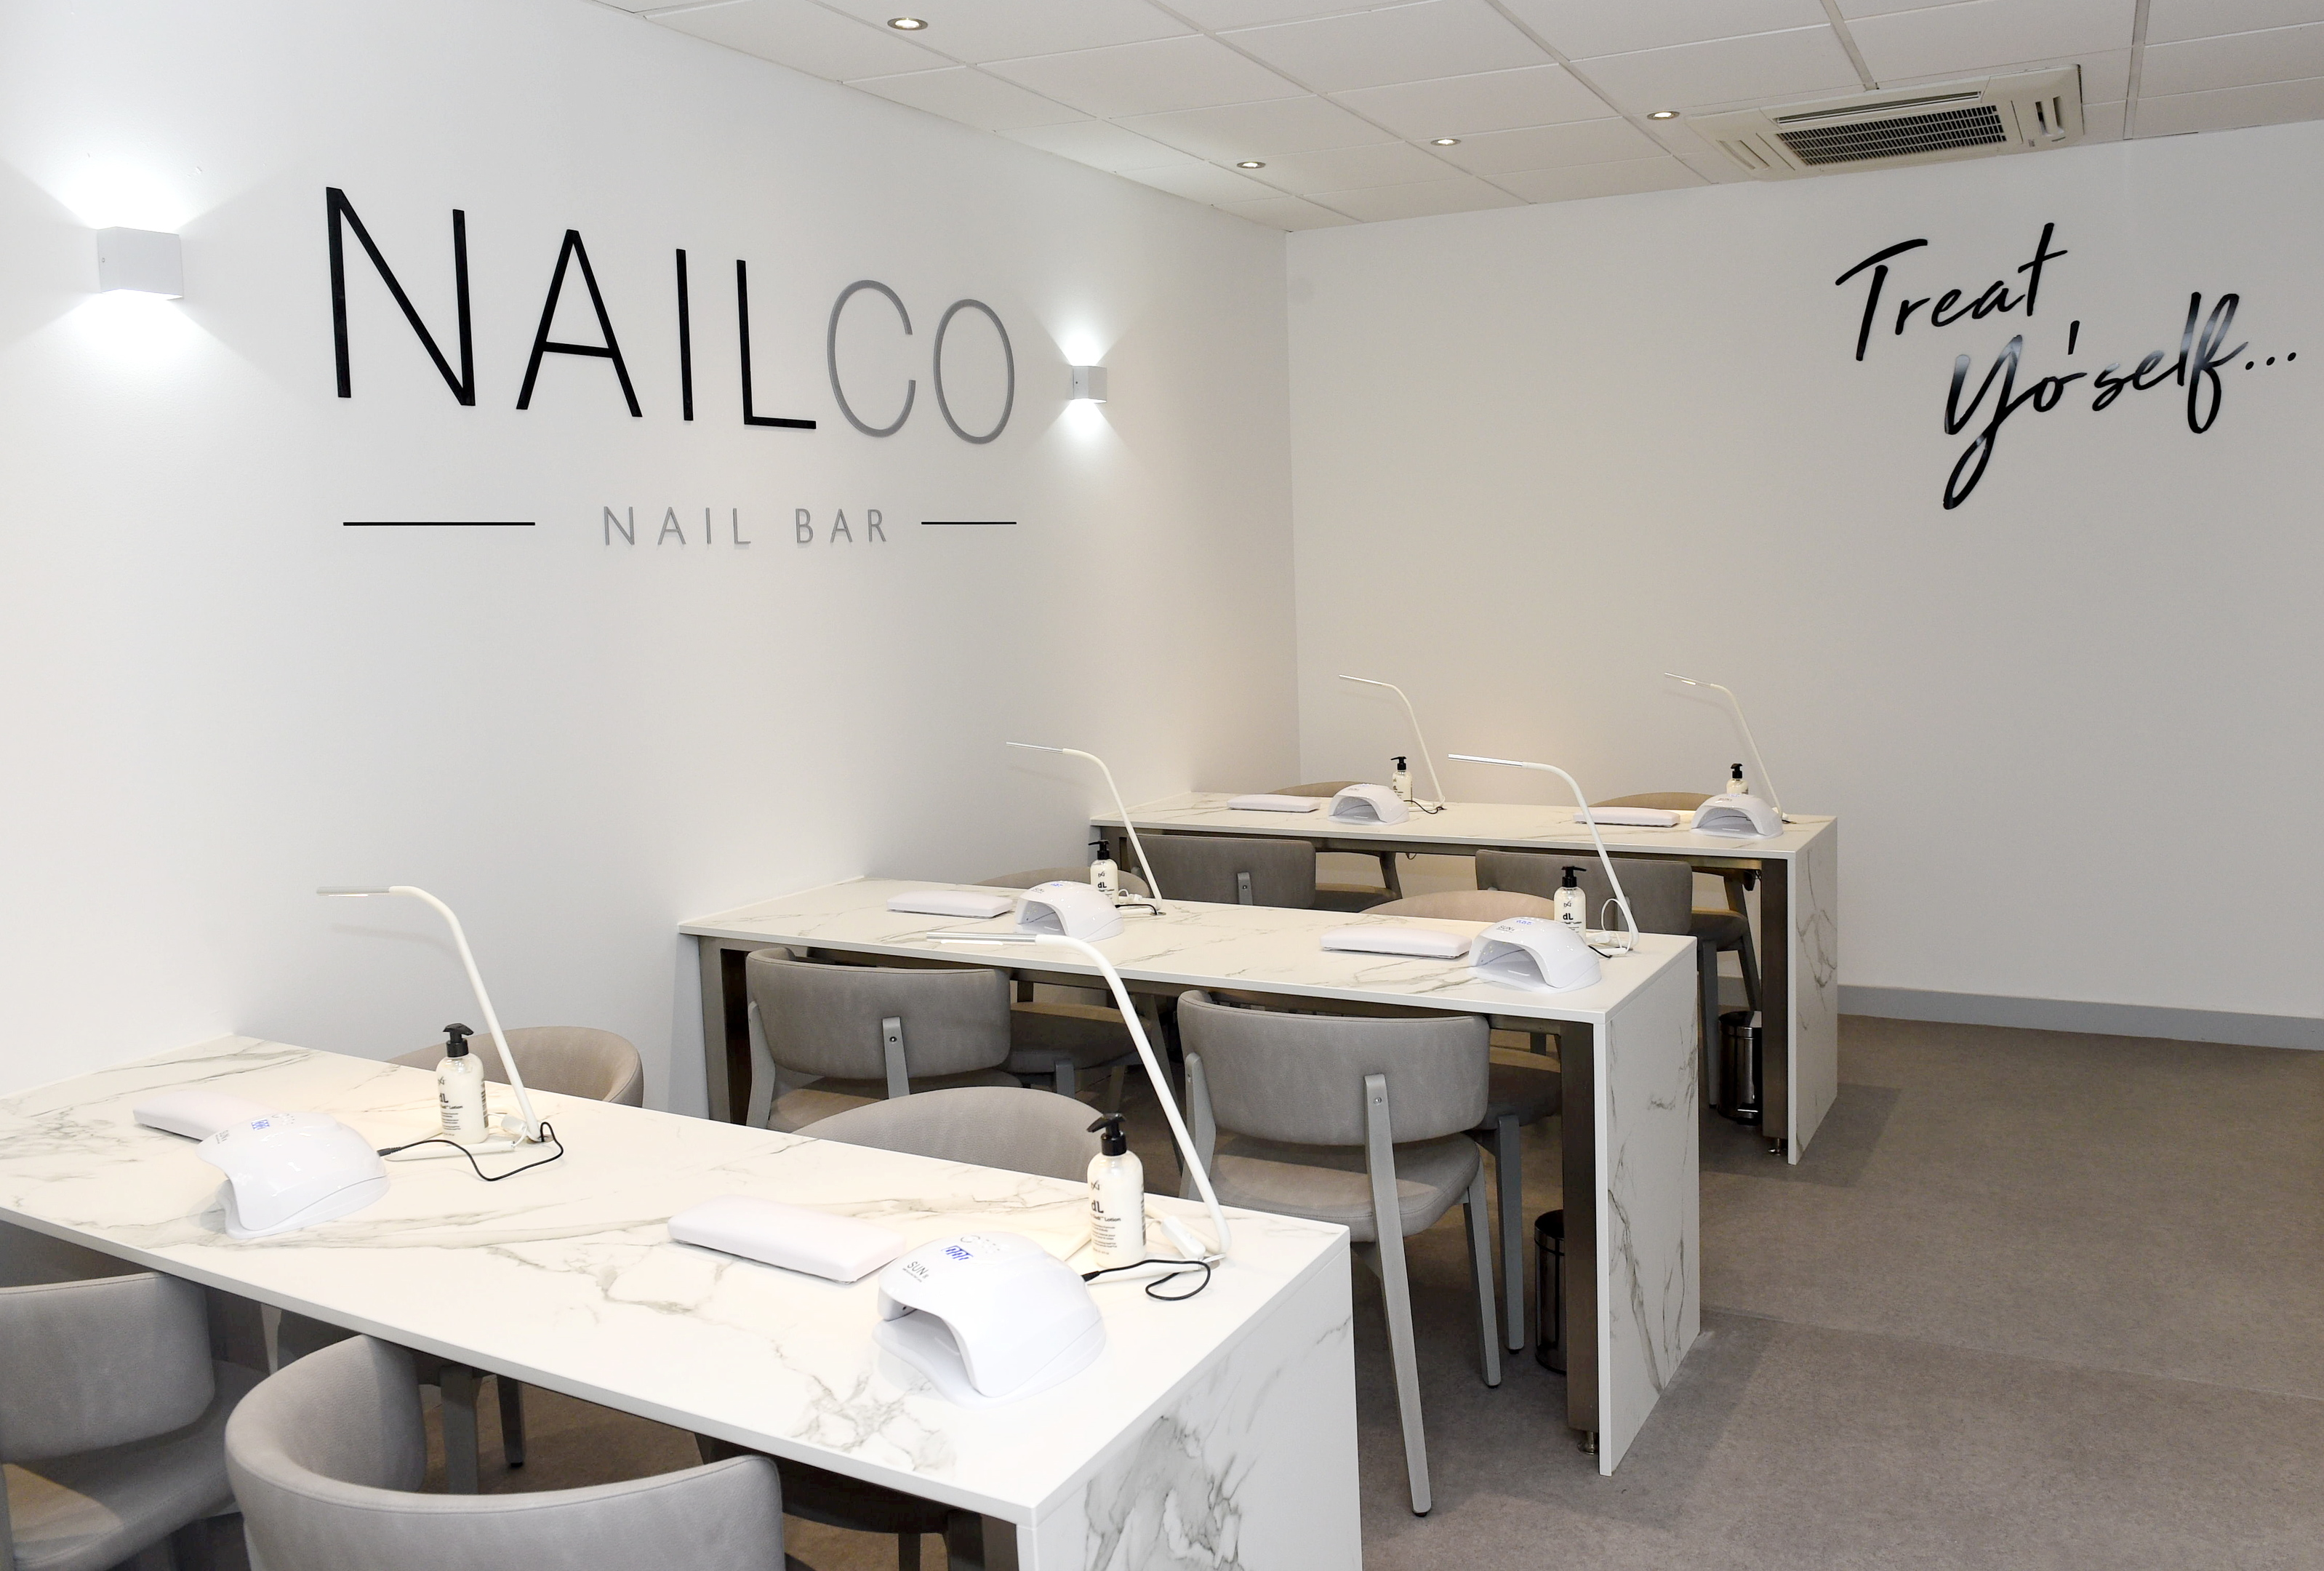 First look: Aberdeen's new trendy nail bar opens - Society